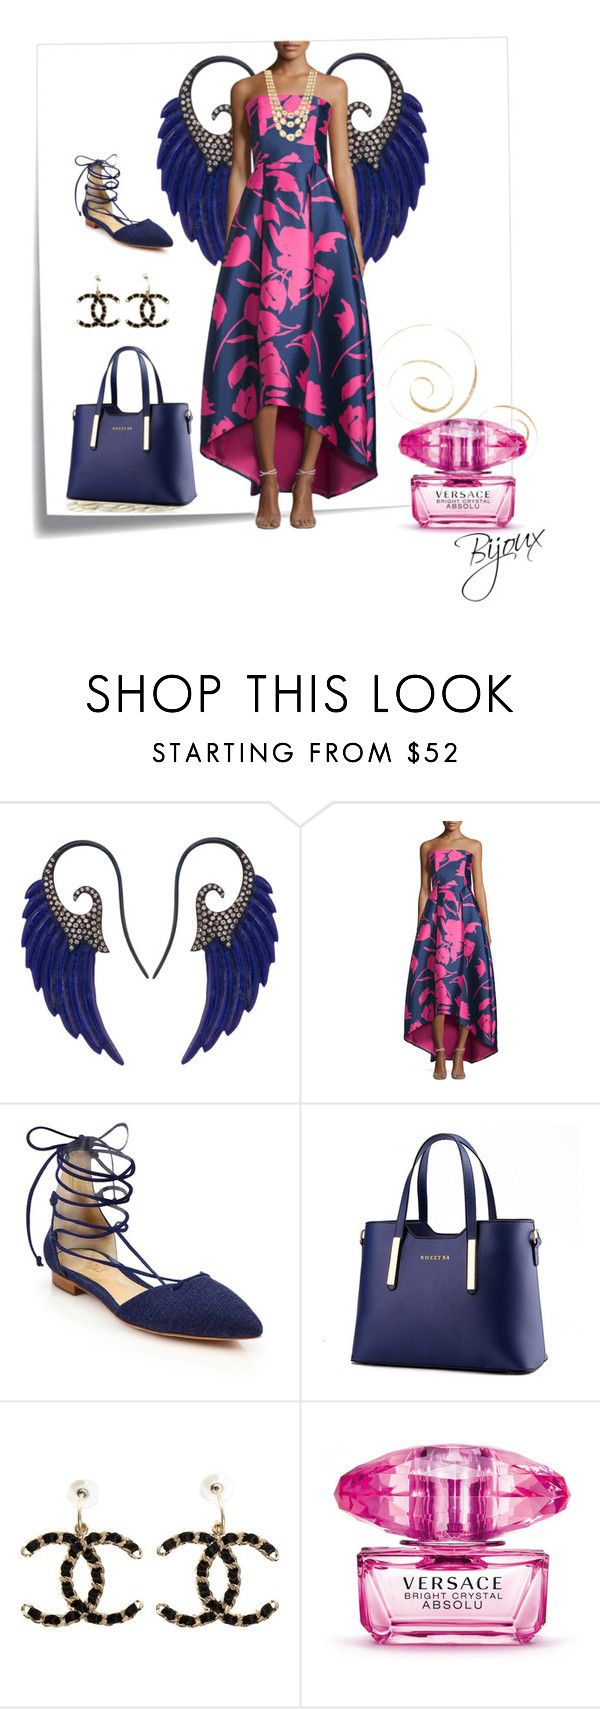 """Blue Angel"" by weirnixie ❤ liked on Polyvore featuring Post-It, Noor Fares, NOIR Sachin + Babi, Schutz, Eurø Style, Chanel, Versace and Marco Bicego"